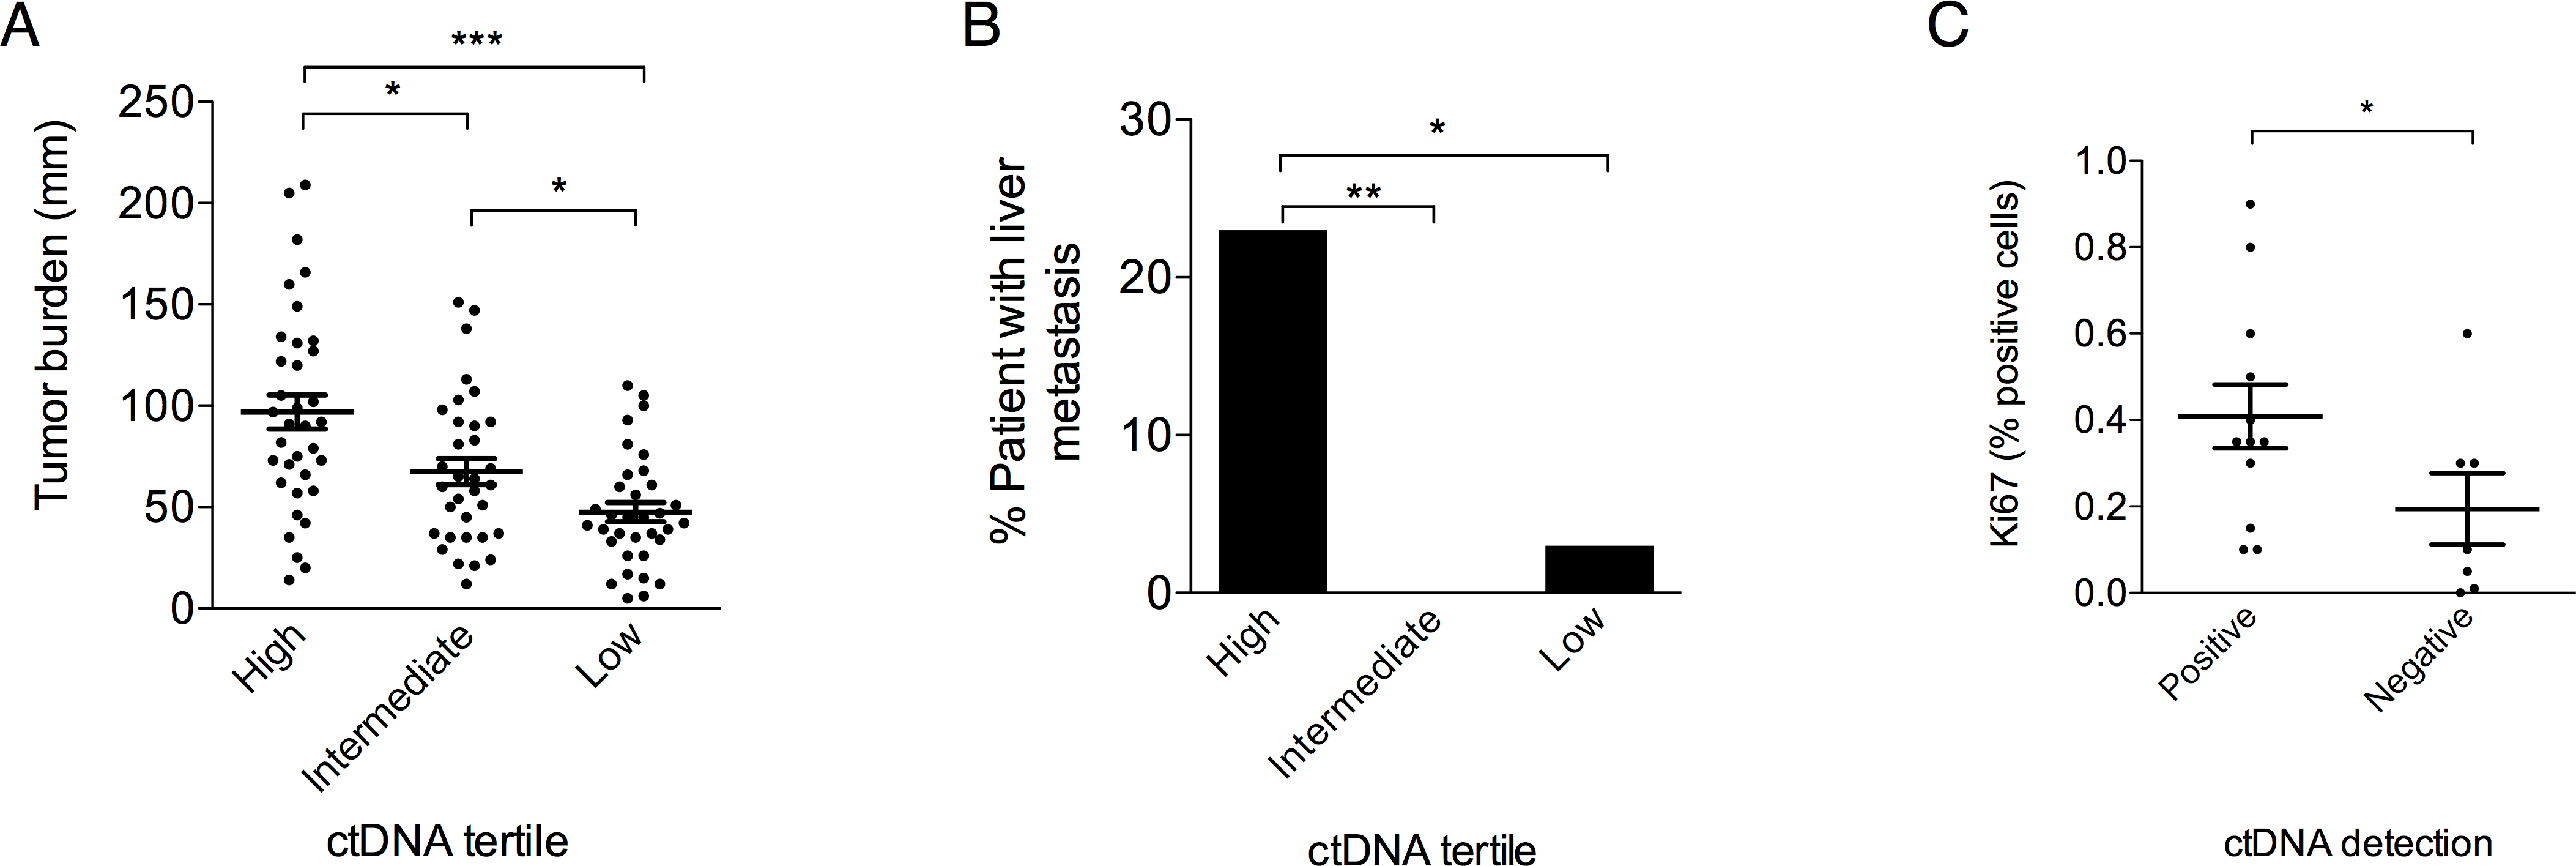 Clinical characteristics associated with ctDNA concentration.